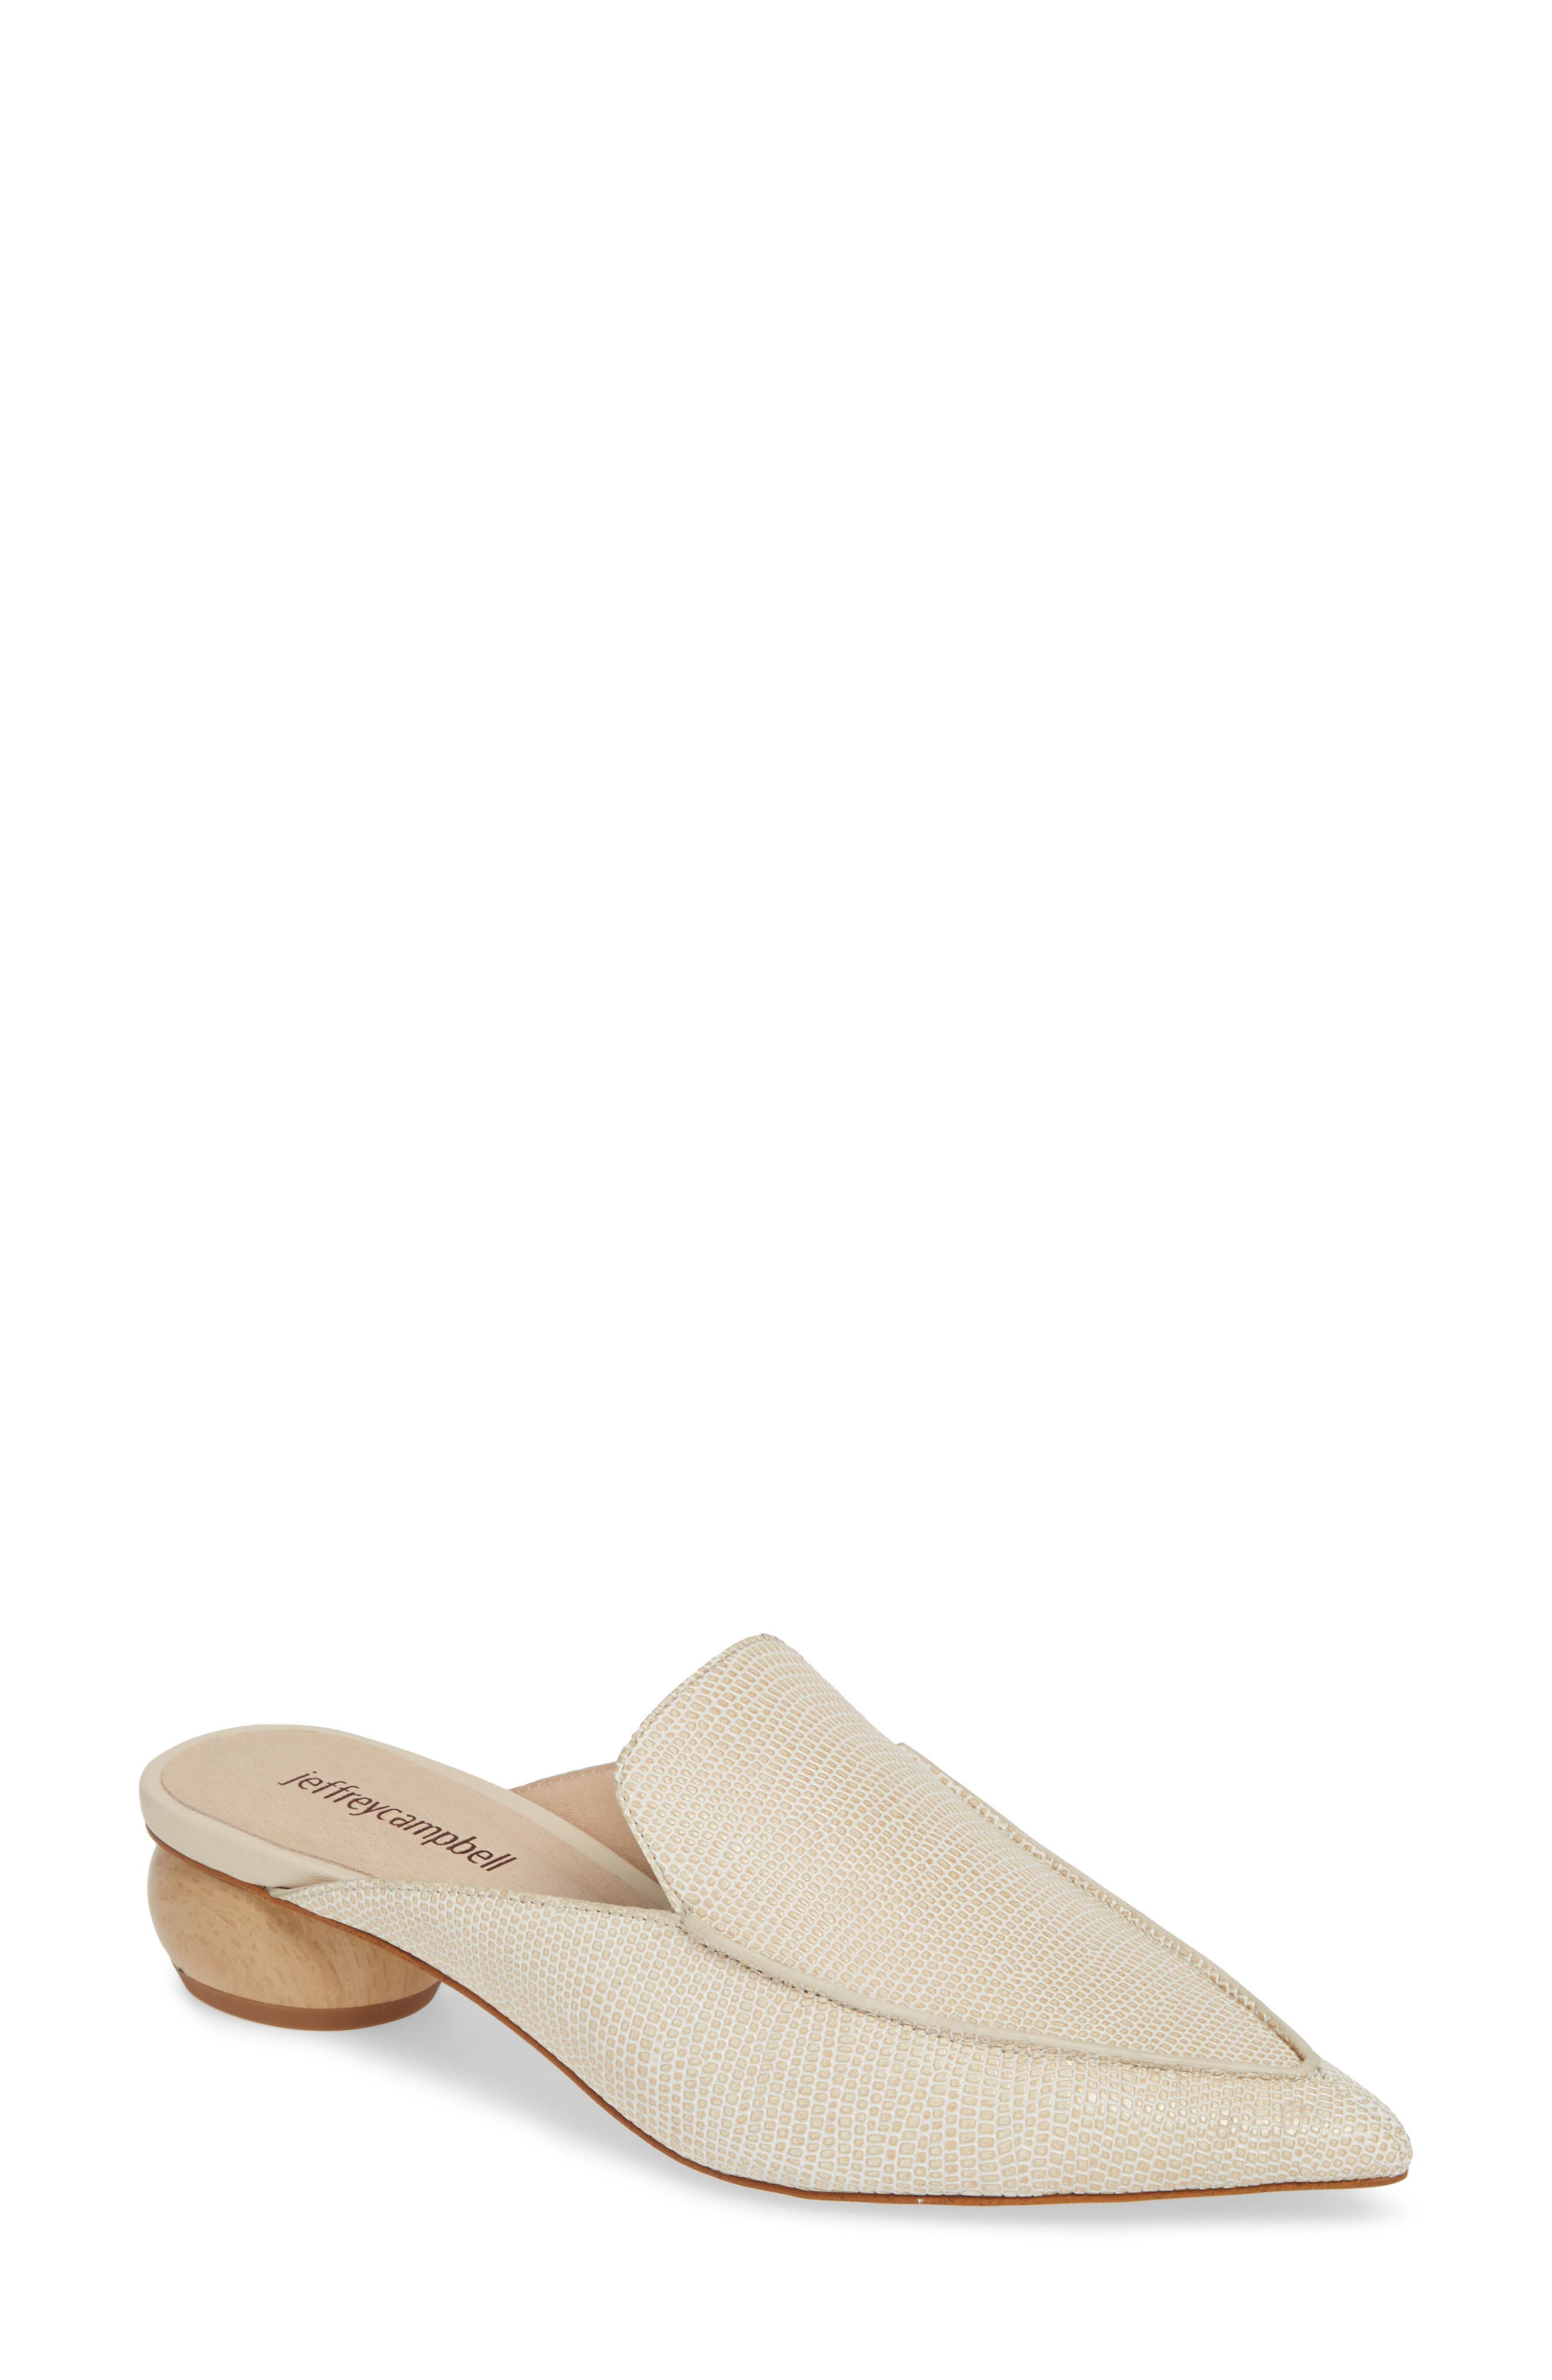 JEFFREY CAMPBELL Vionit Lizard Embossed Loafer Mule, Main, color, BEIGE LIZARD PRINT